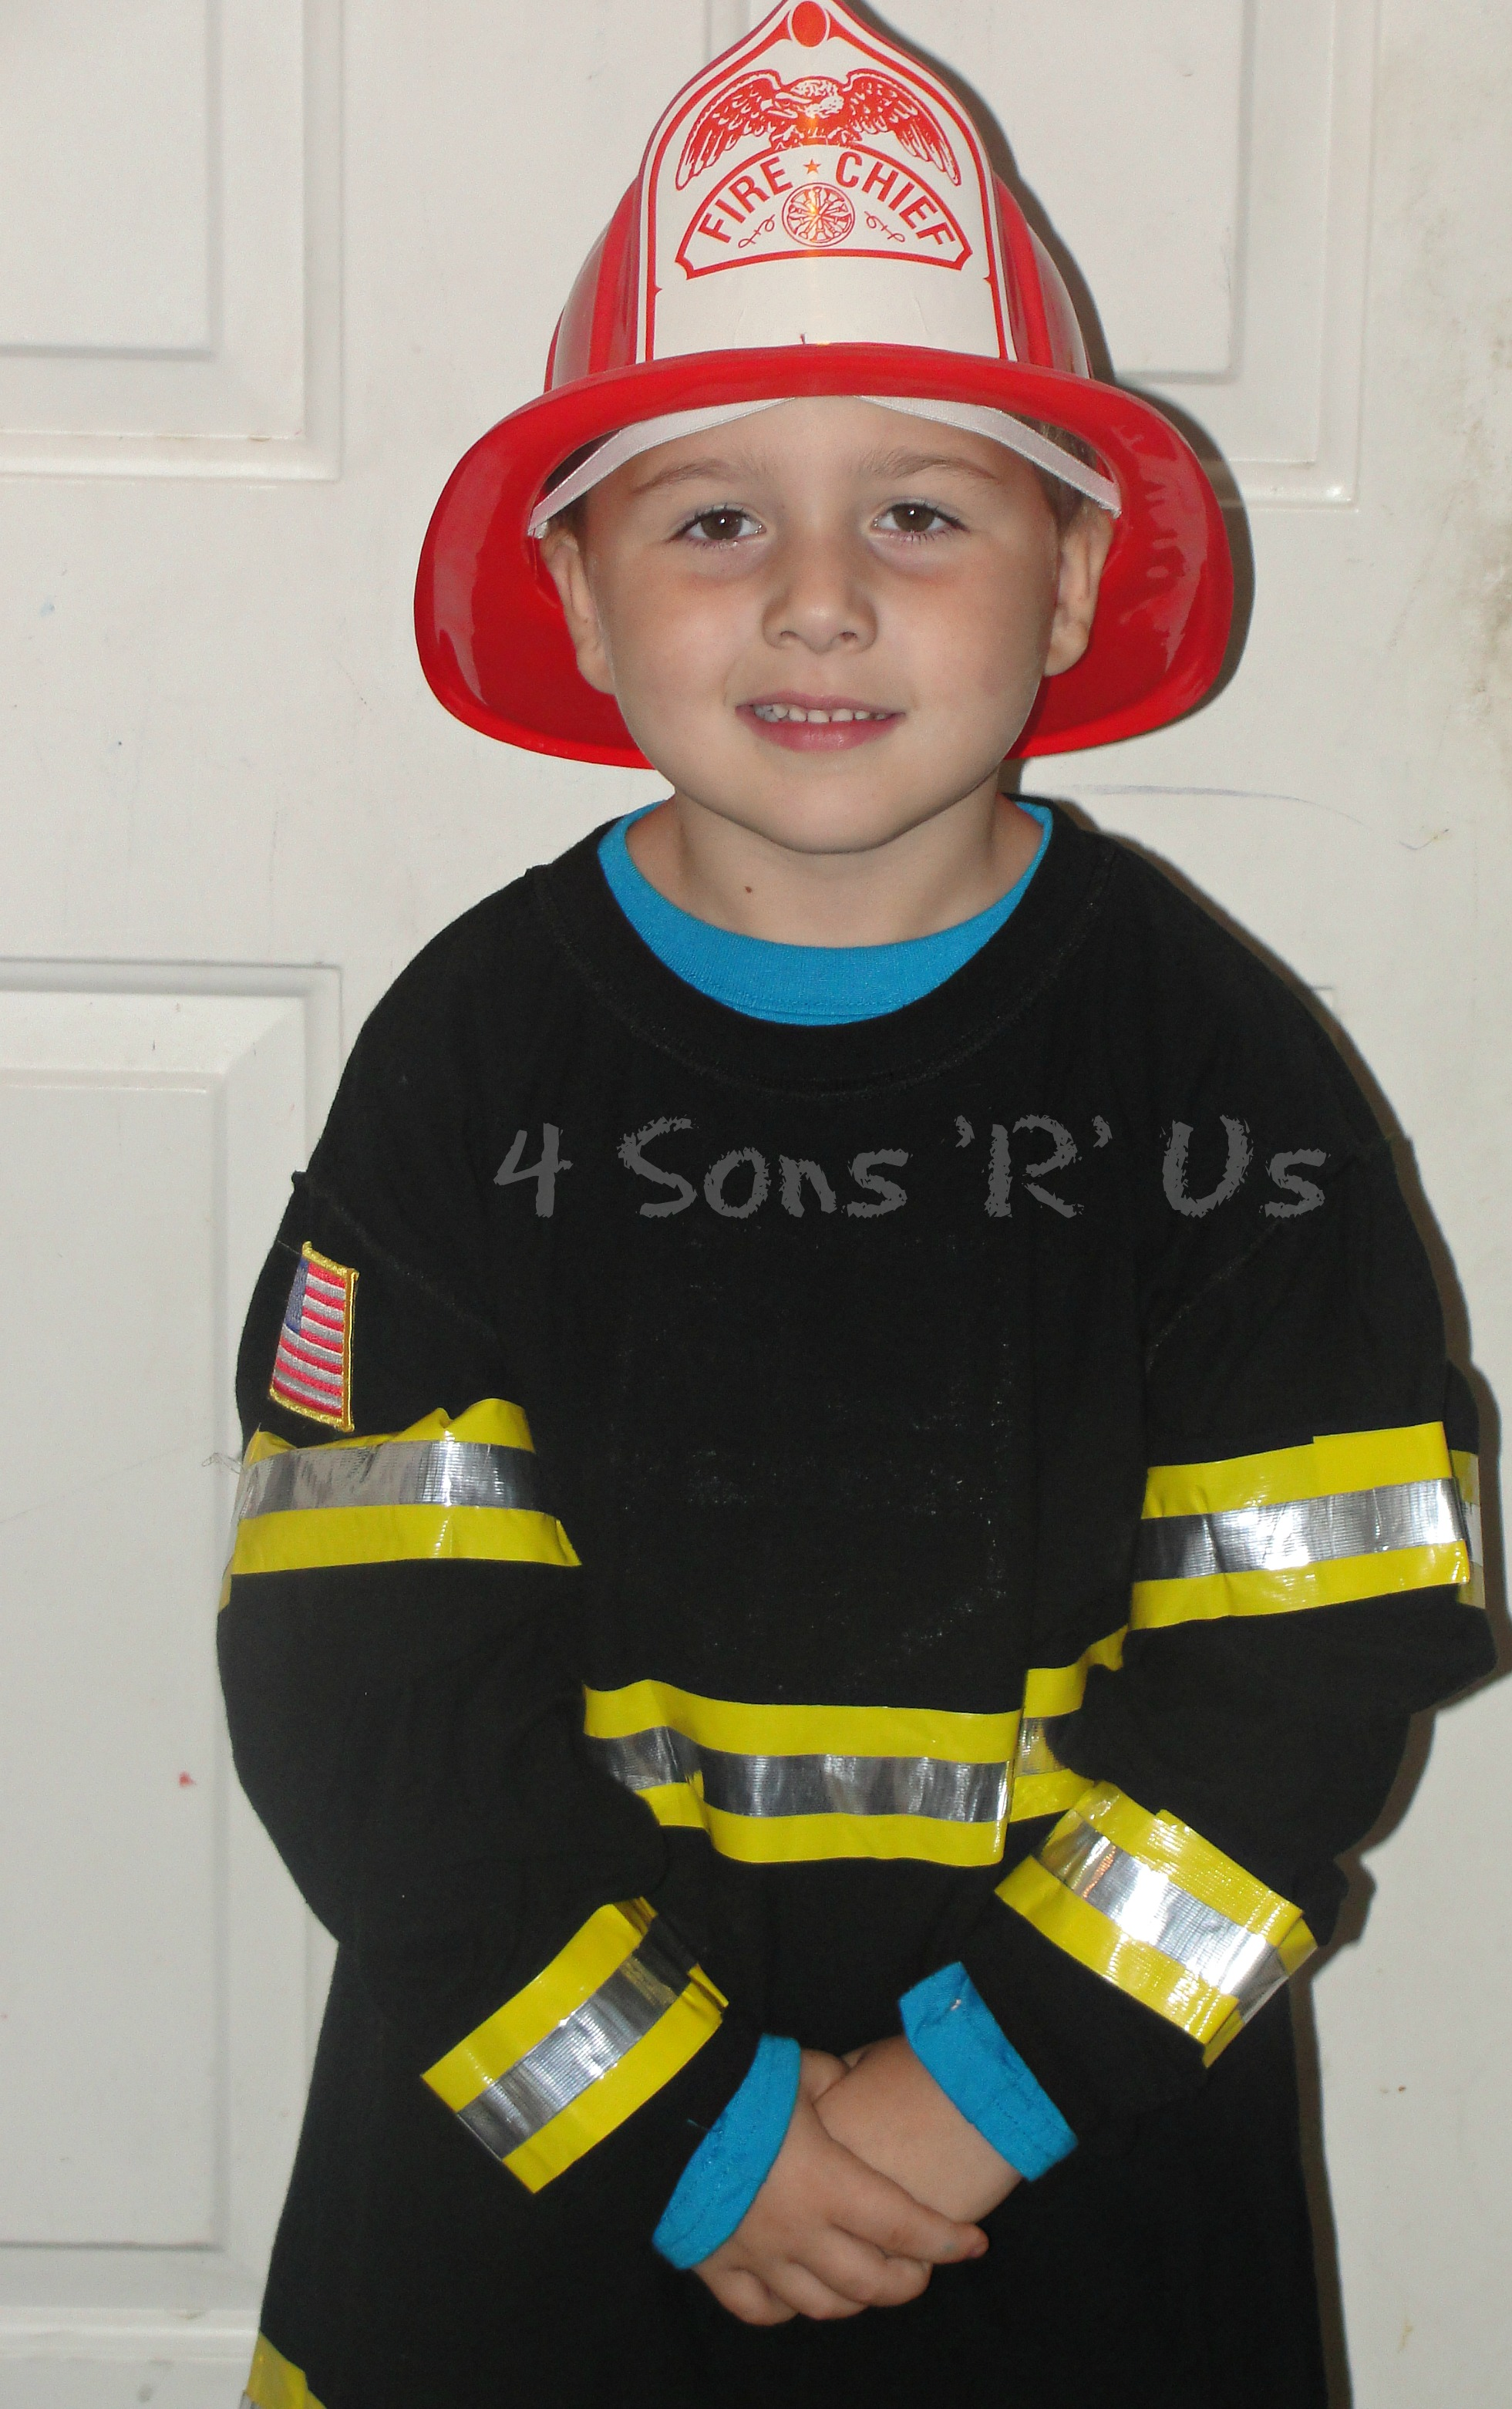 Diy archives 4 sons r us diy fireman costume solutioingenieria Image collections